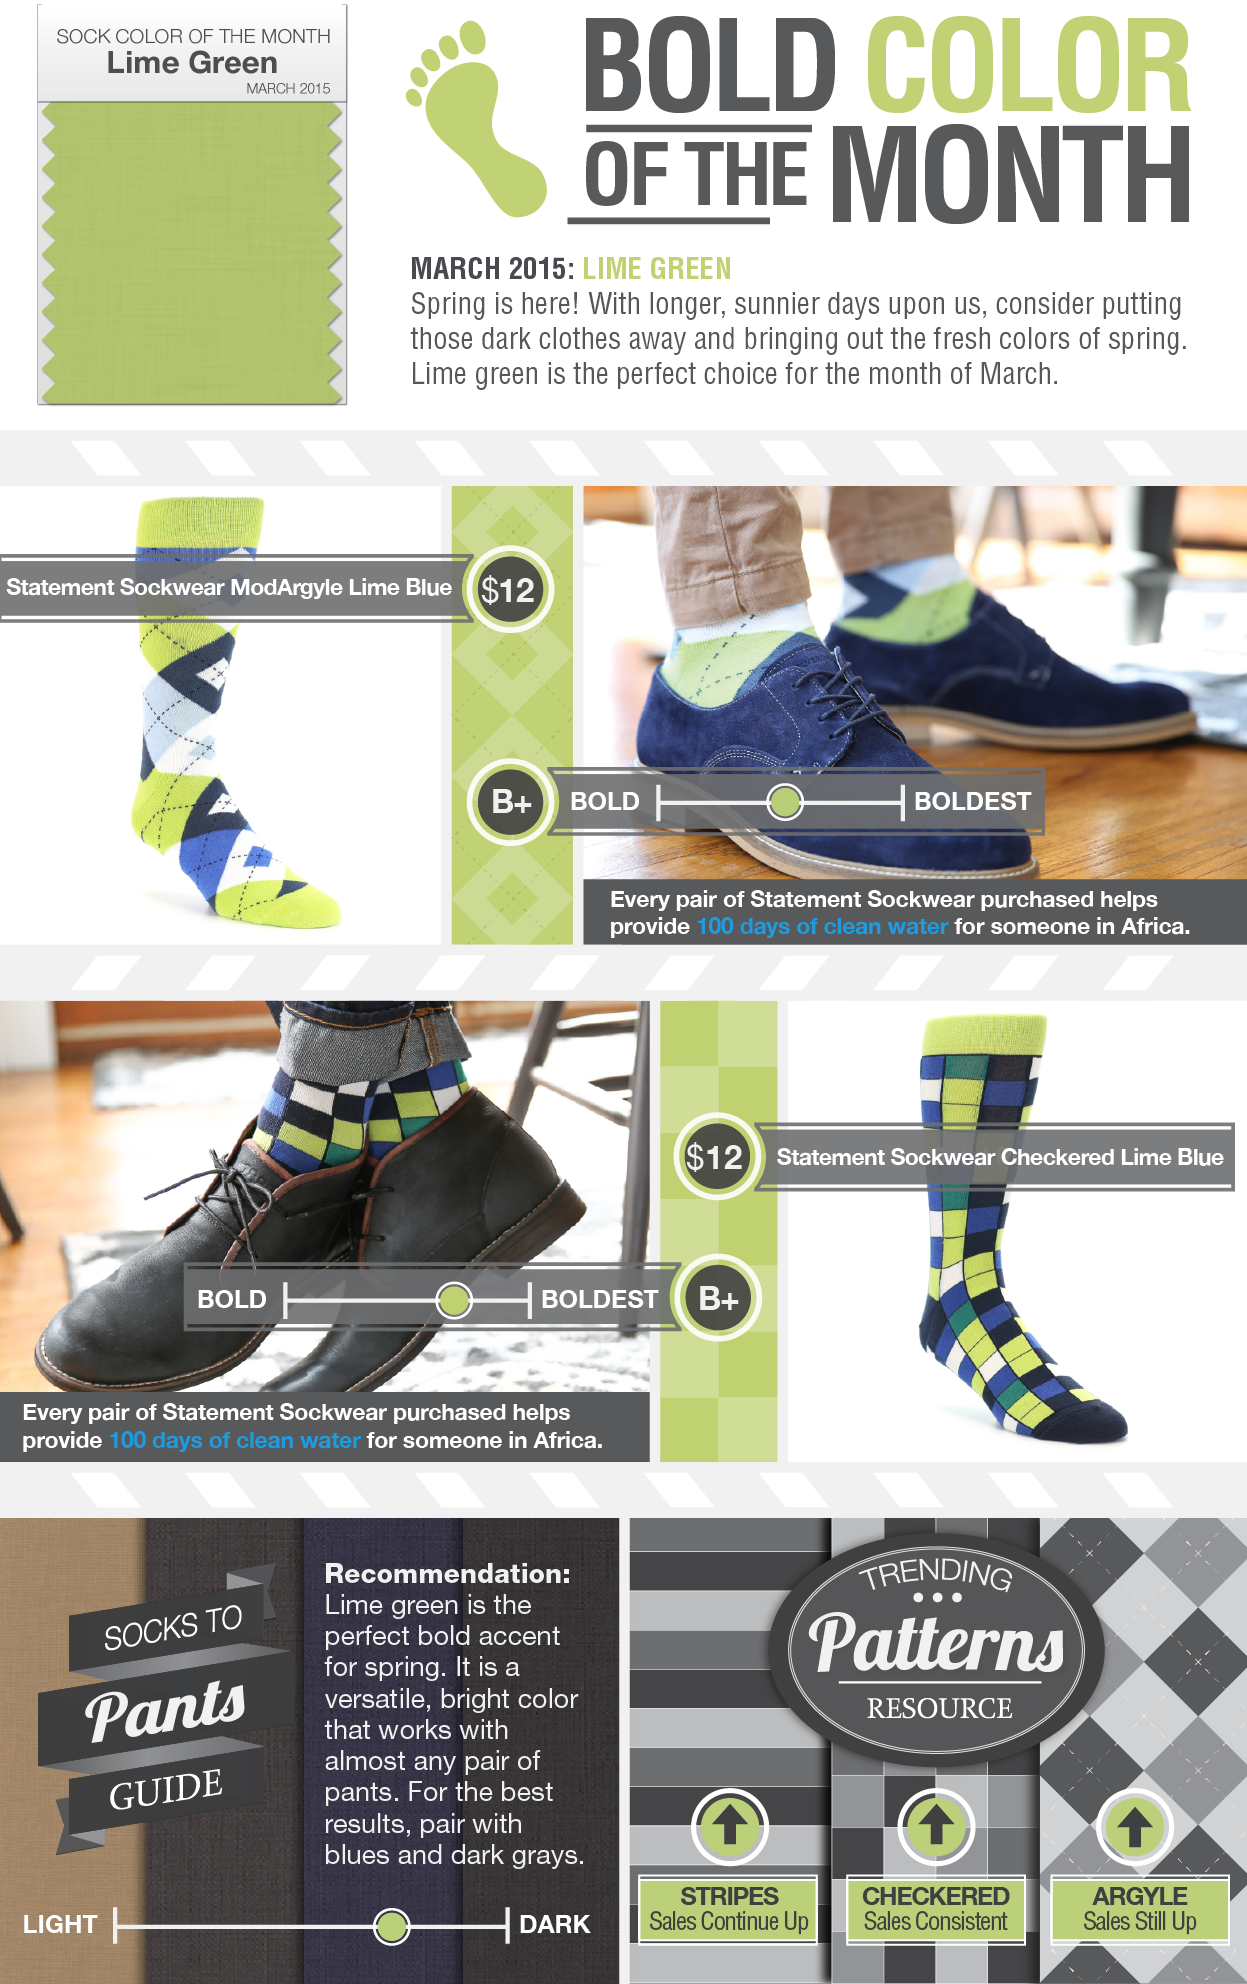 Sock Color of the Month: Lime Green